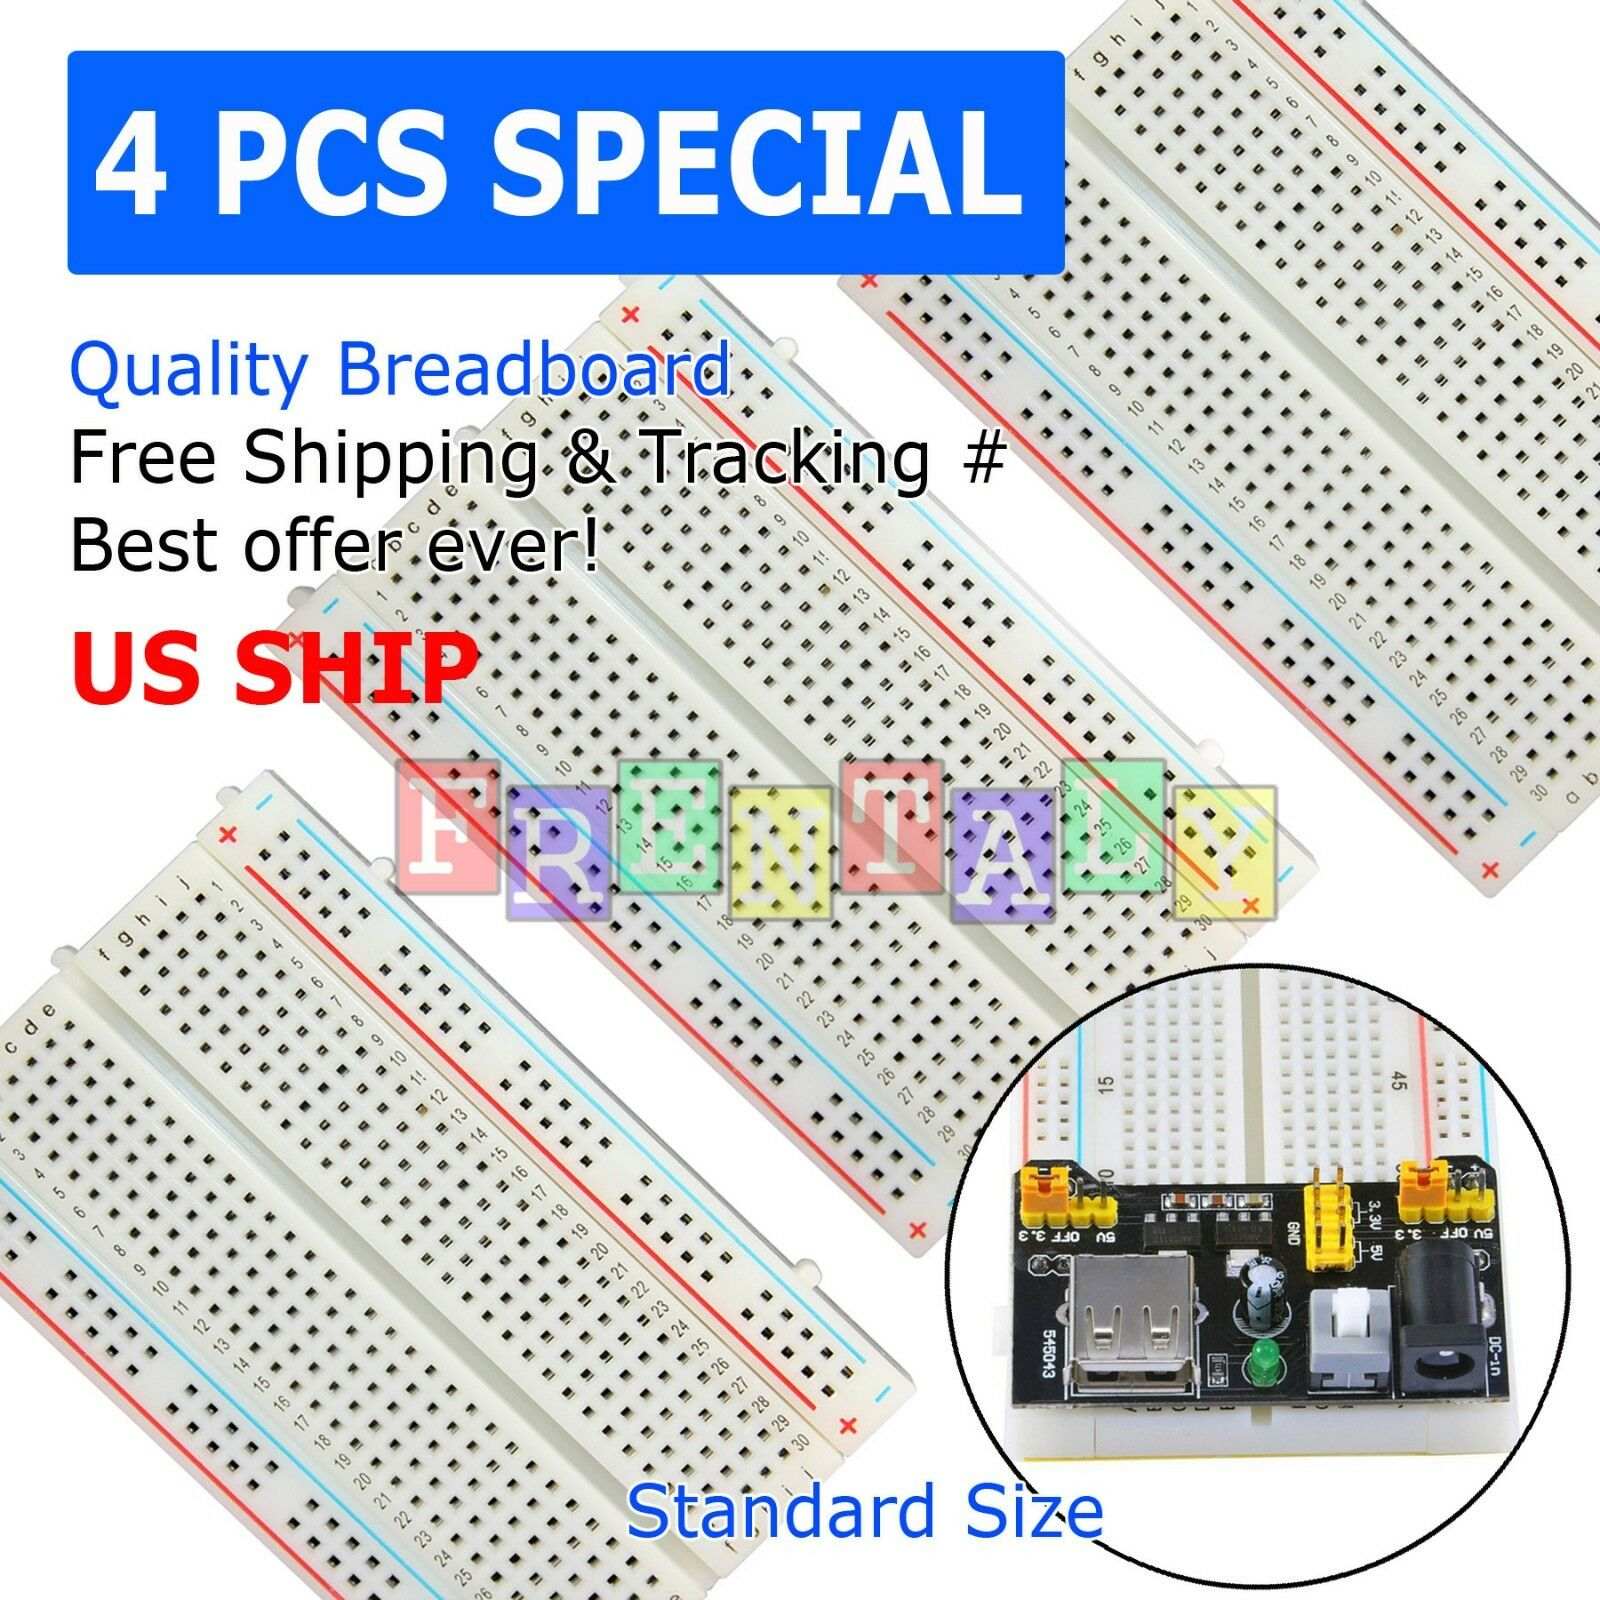 3x Mini 400 Points Prototype Pcb Solderless Breadboard Protoboard Transparent Showing The Metal Strips For Tie 1 Of 7free Shipping See More